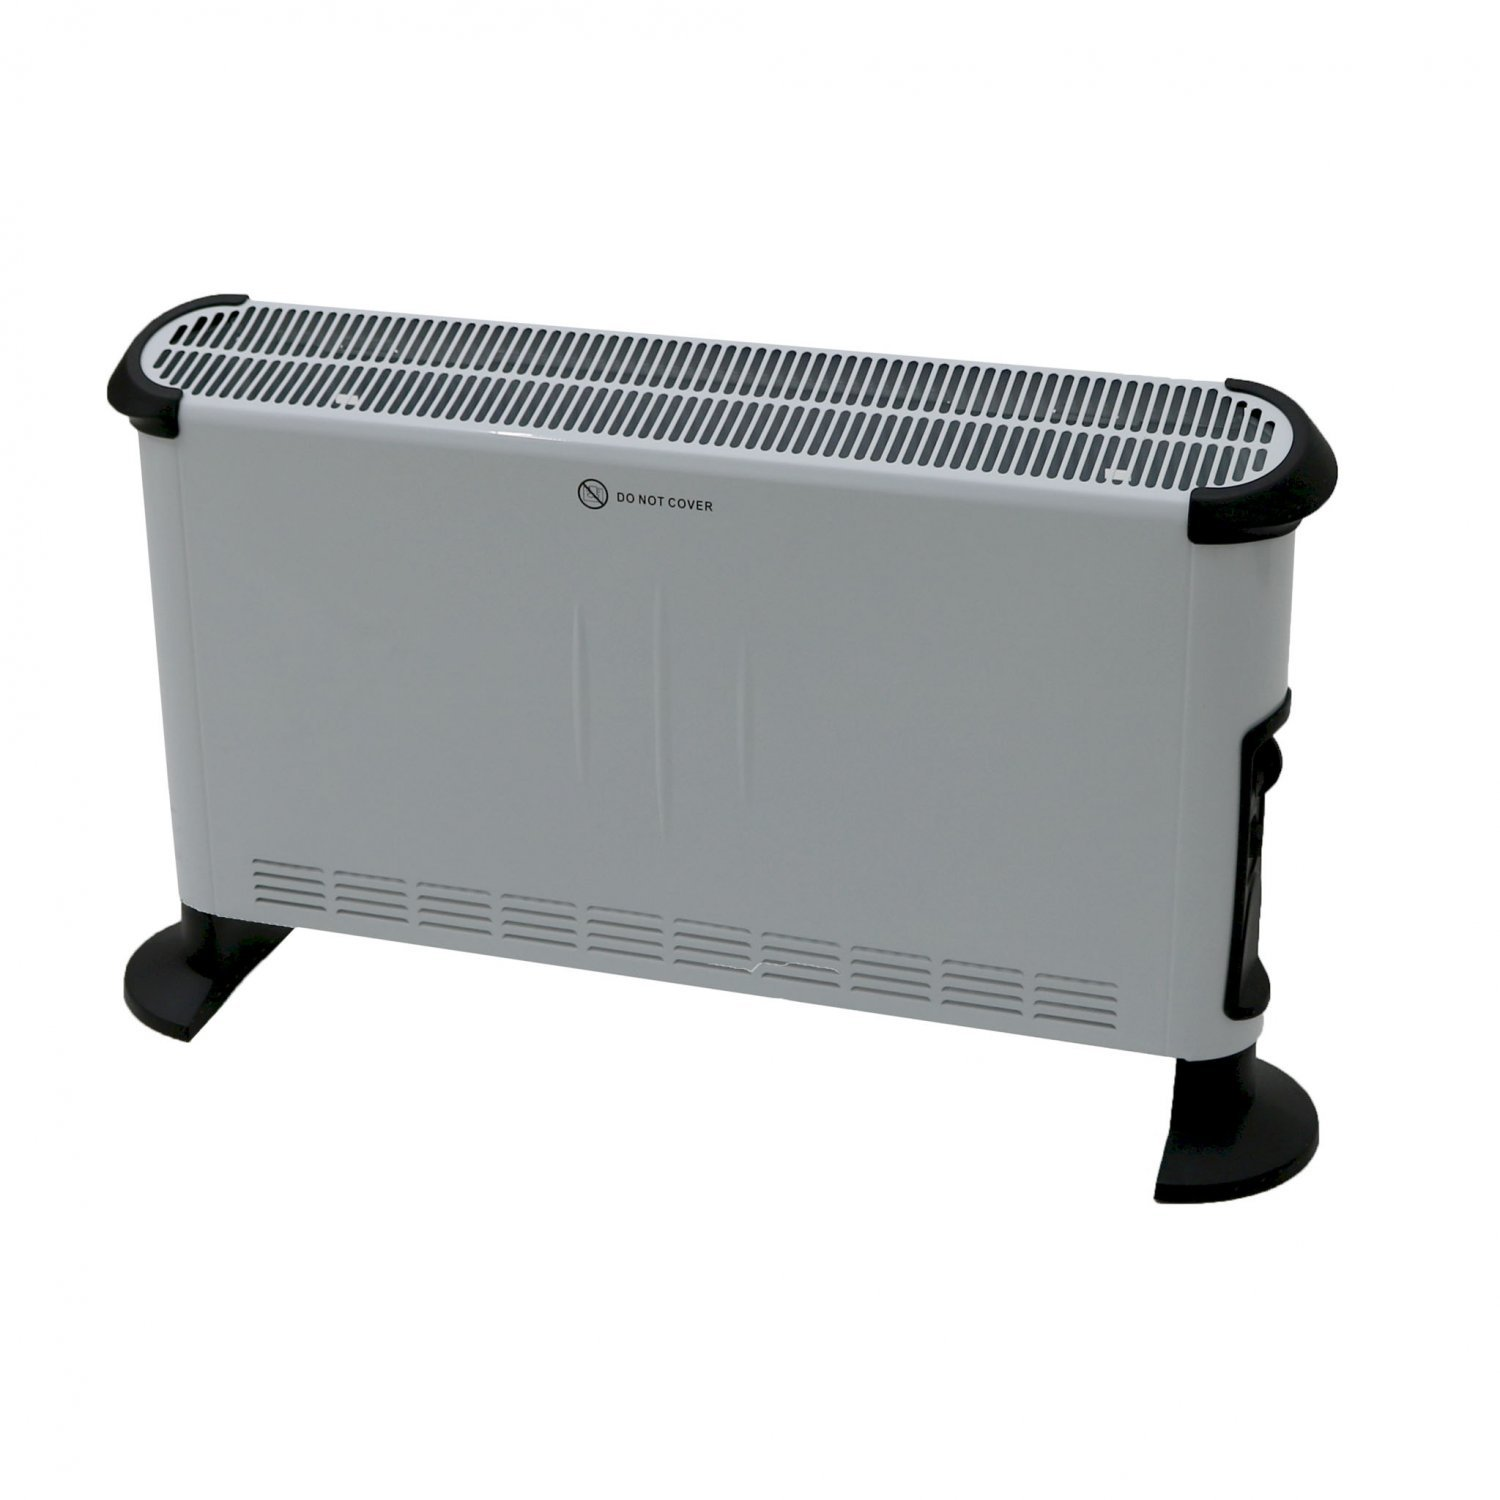 New 2500w 11 Fin Portable Oil Filled Radiator Electric